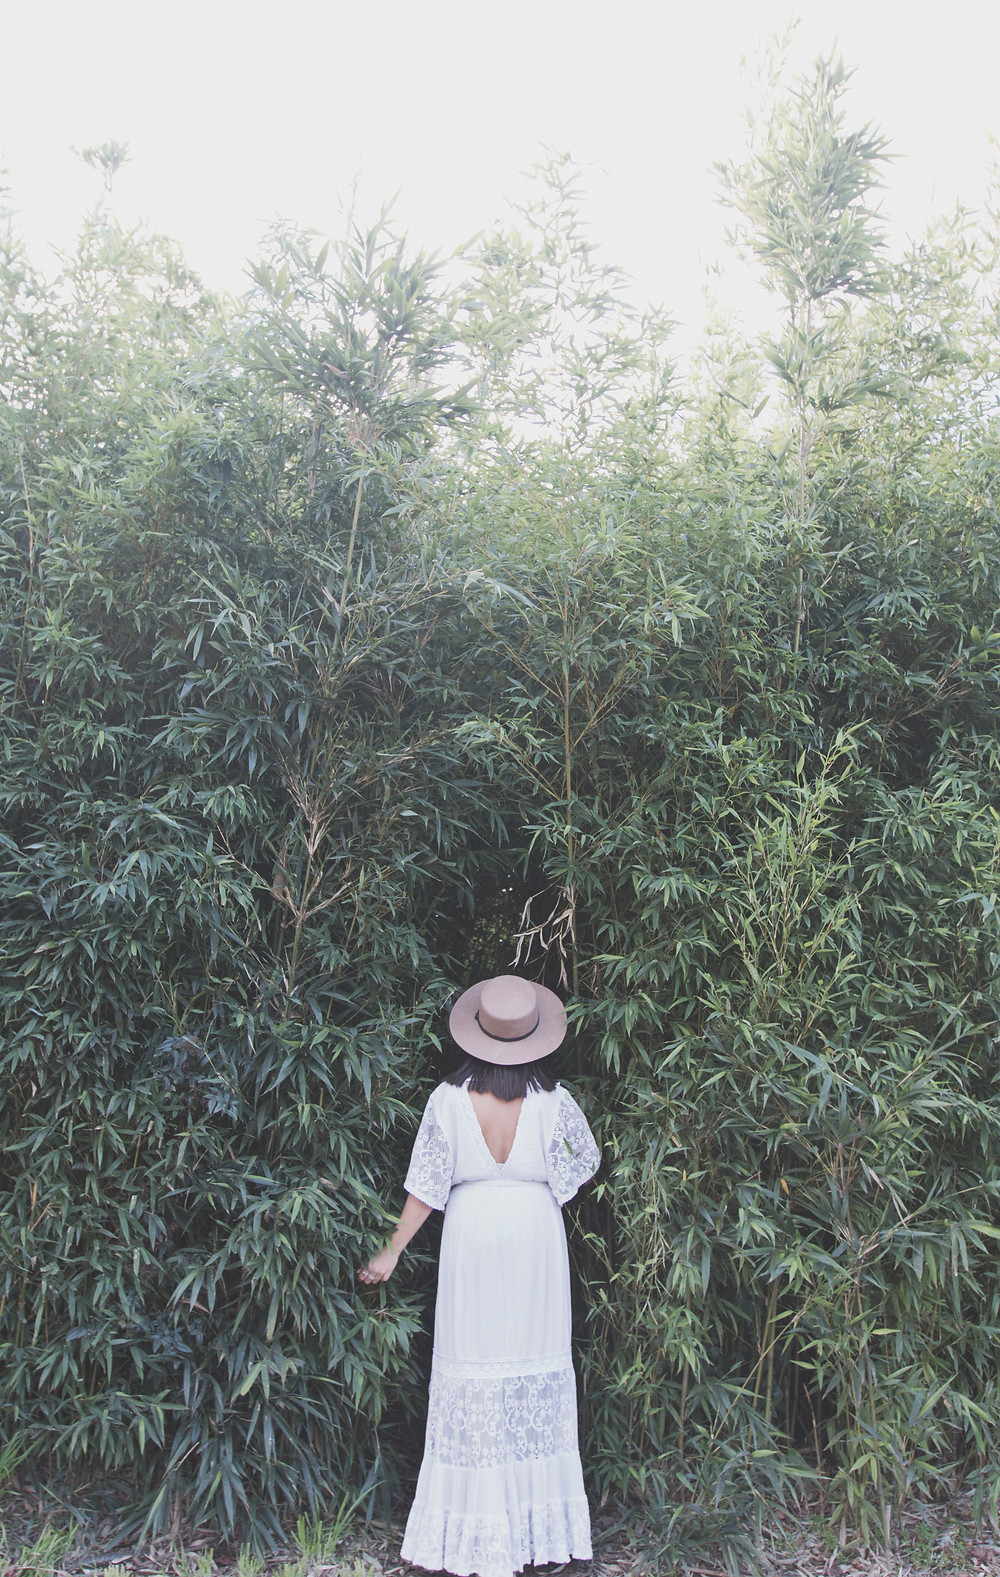 Venturing into bamboo forest of Floriade